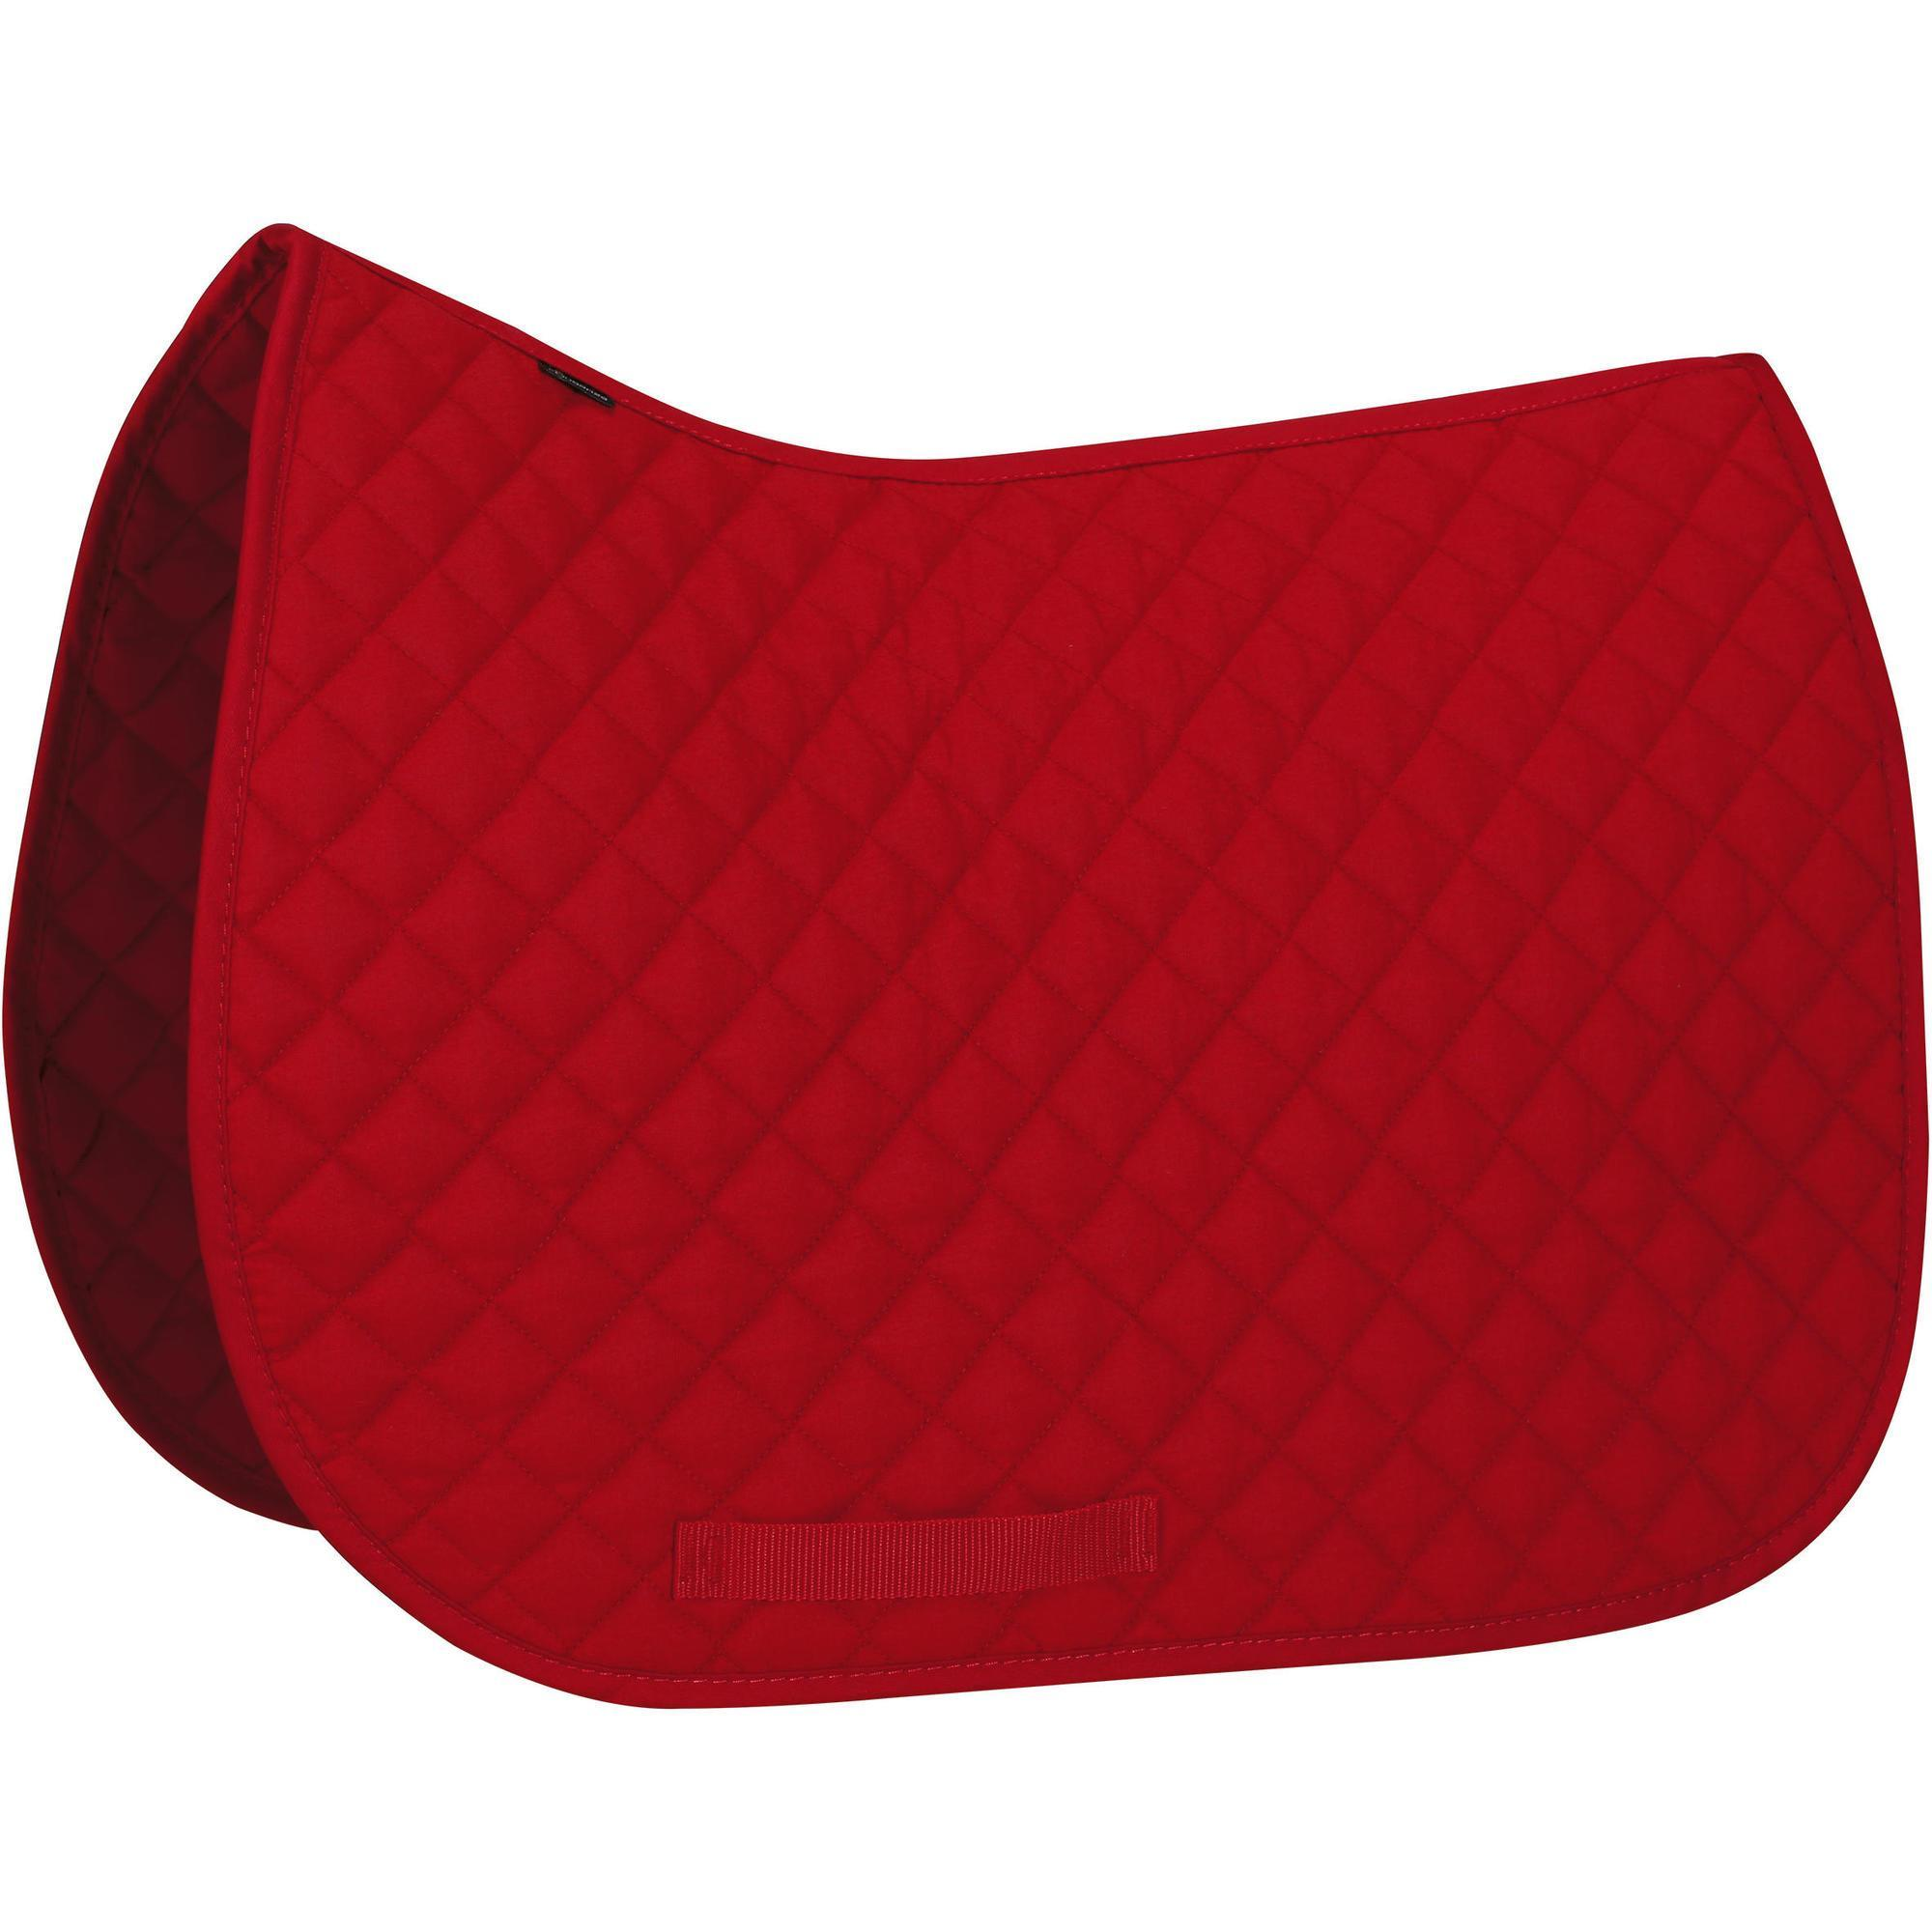 Tapis de selle quitation poney et cheval schooling rouge fouganza Tapis cheval decathlon